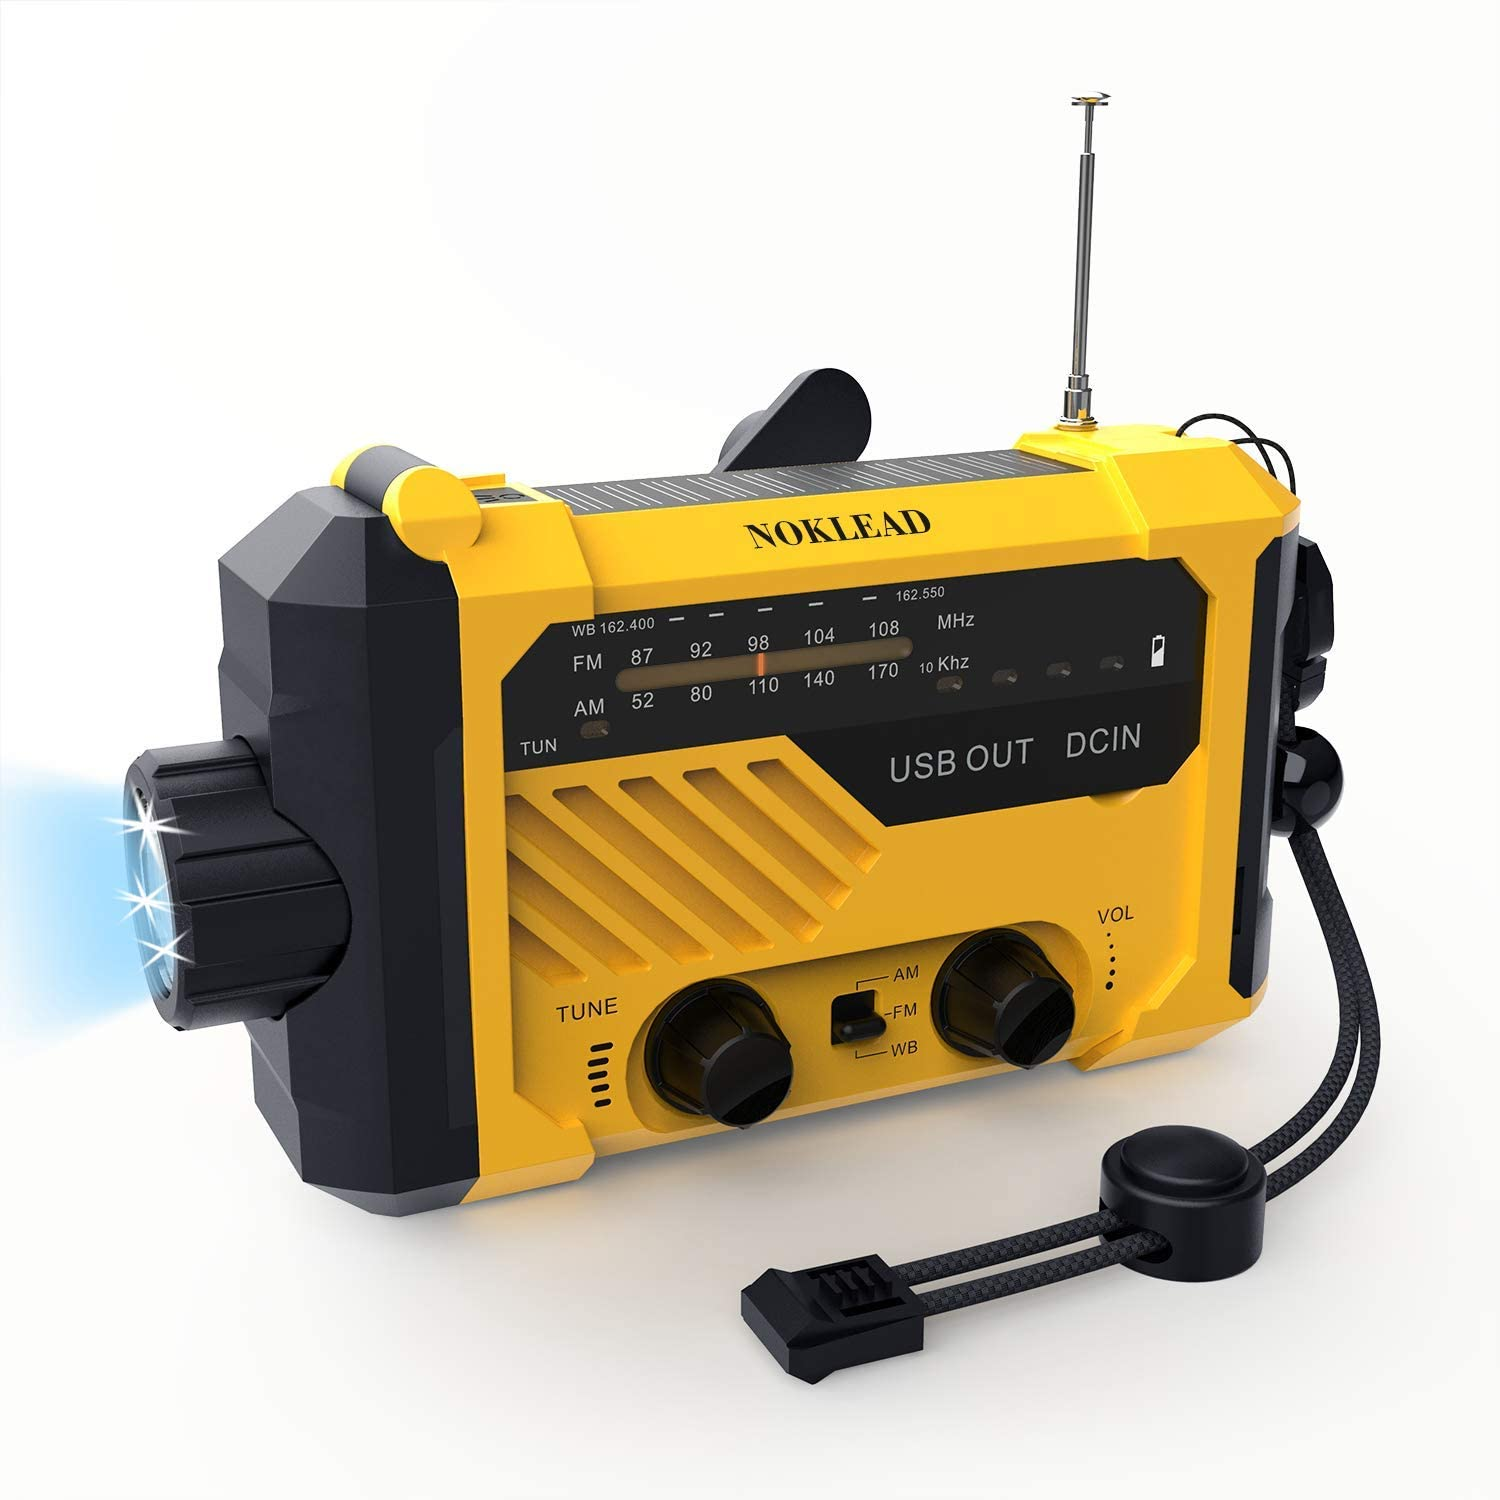 NOKLEAD Portable Emergency Weather Radio – Hand Crank Solar AM/FM/WB NOAA Radio with Flashlight Read Light USB Charger SOS Alert, 2000mAh Power Bank for Cell Phone, AAA Battery Operated (Yellow)